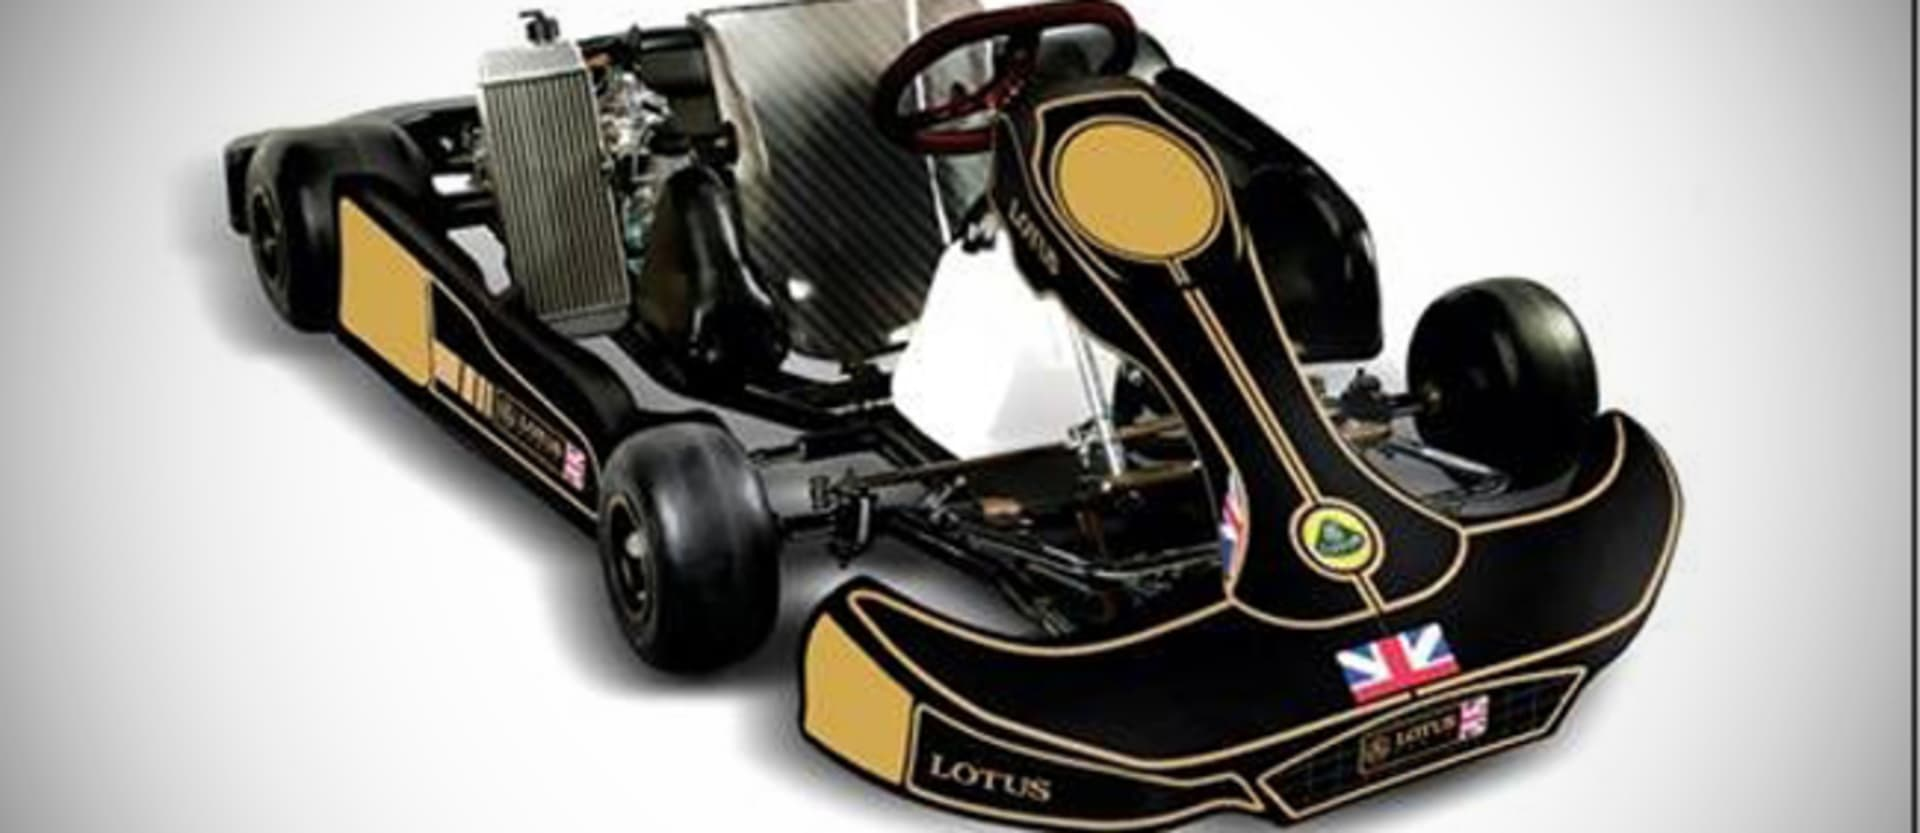 Lotus grabs them young